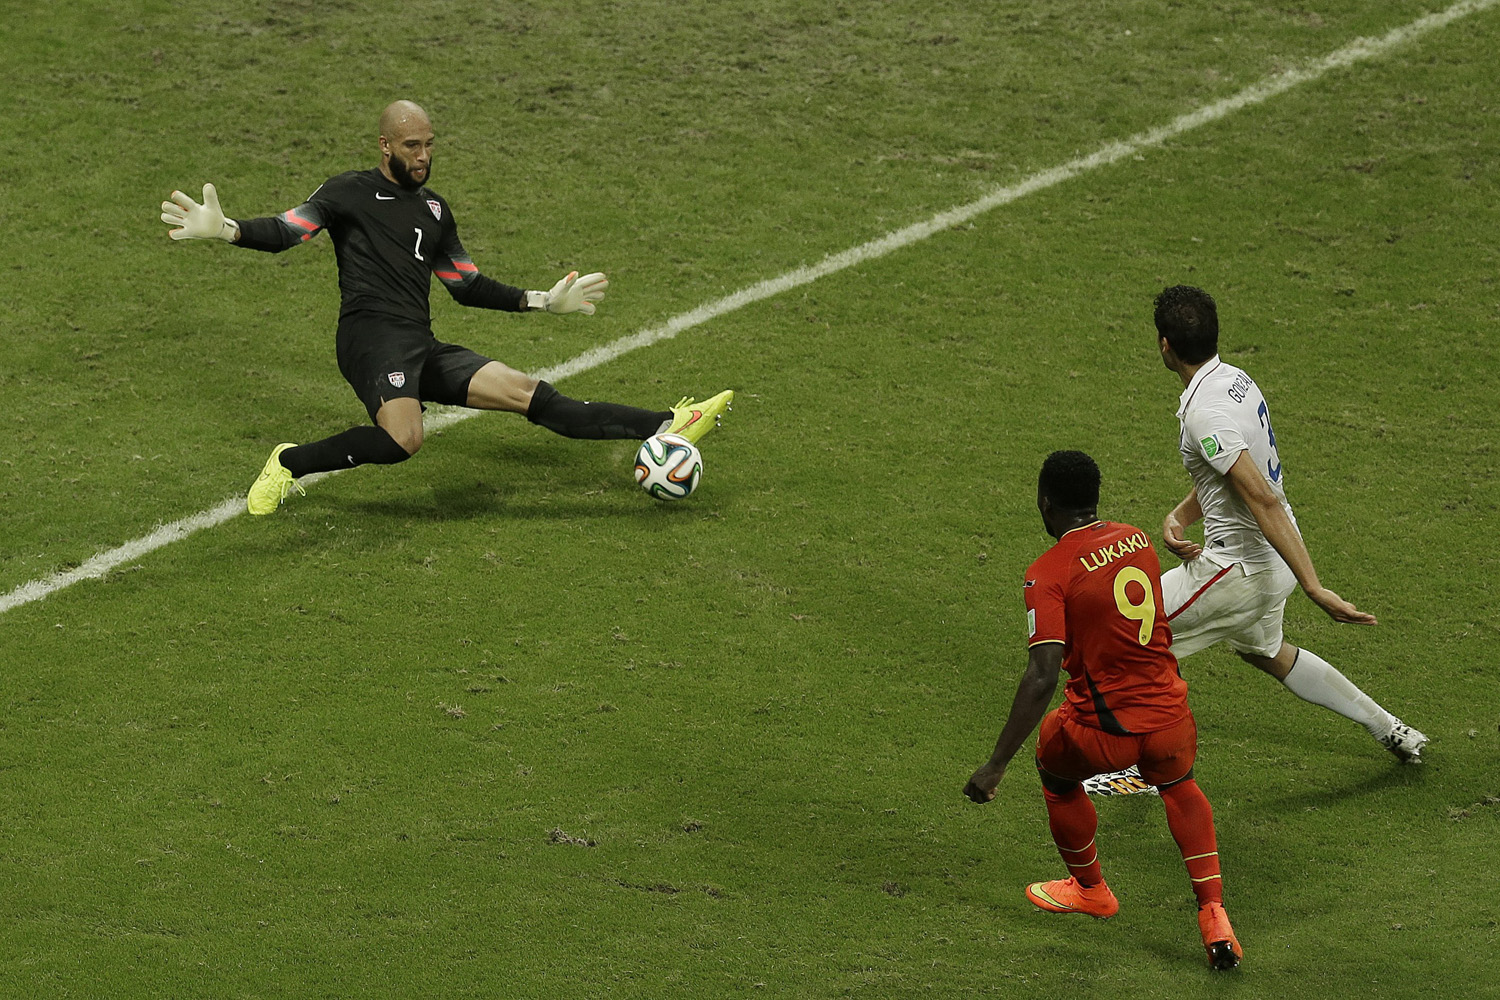 Jul. 1, 2014. United States' goalkeeper Tim Howard, left, makes a save as Belgium's Romelu Lukaku, front, looks on during the World Cup round of 16 soccer match between Belgium and the USA at the Arena Fonte Nova in Salvador, Brazil.